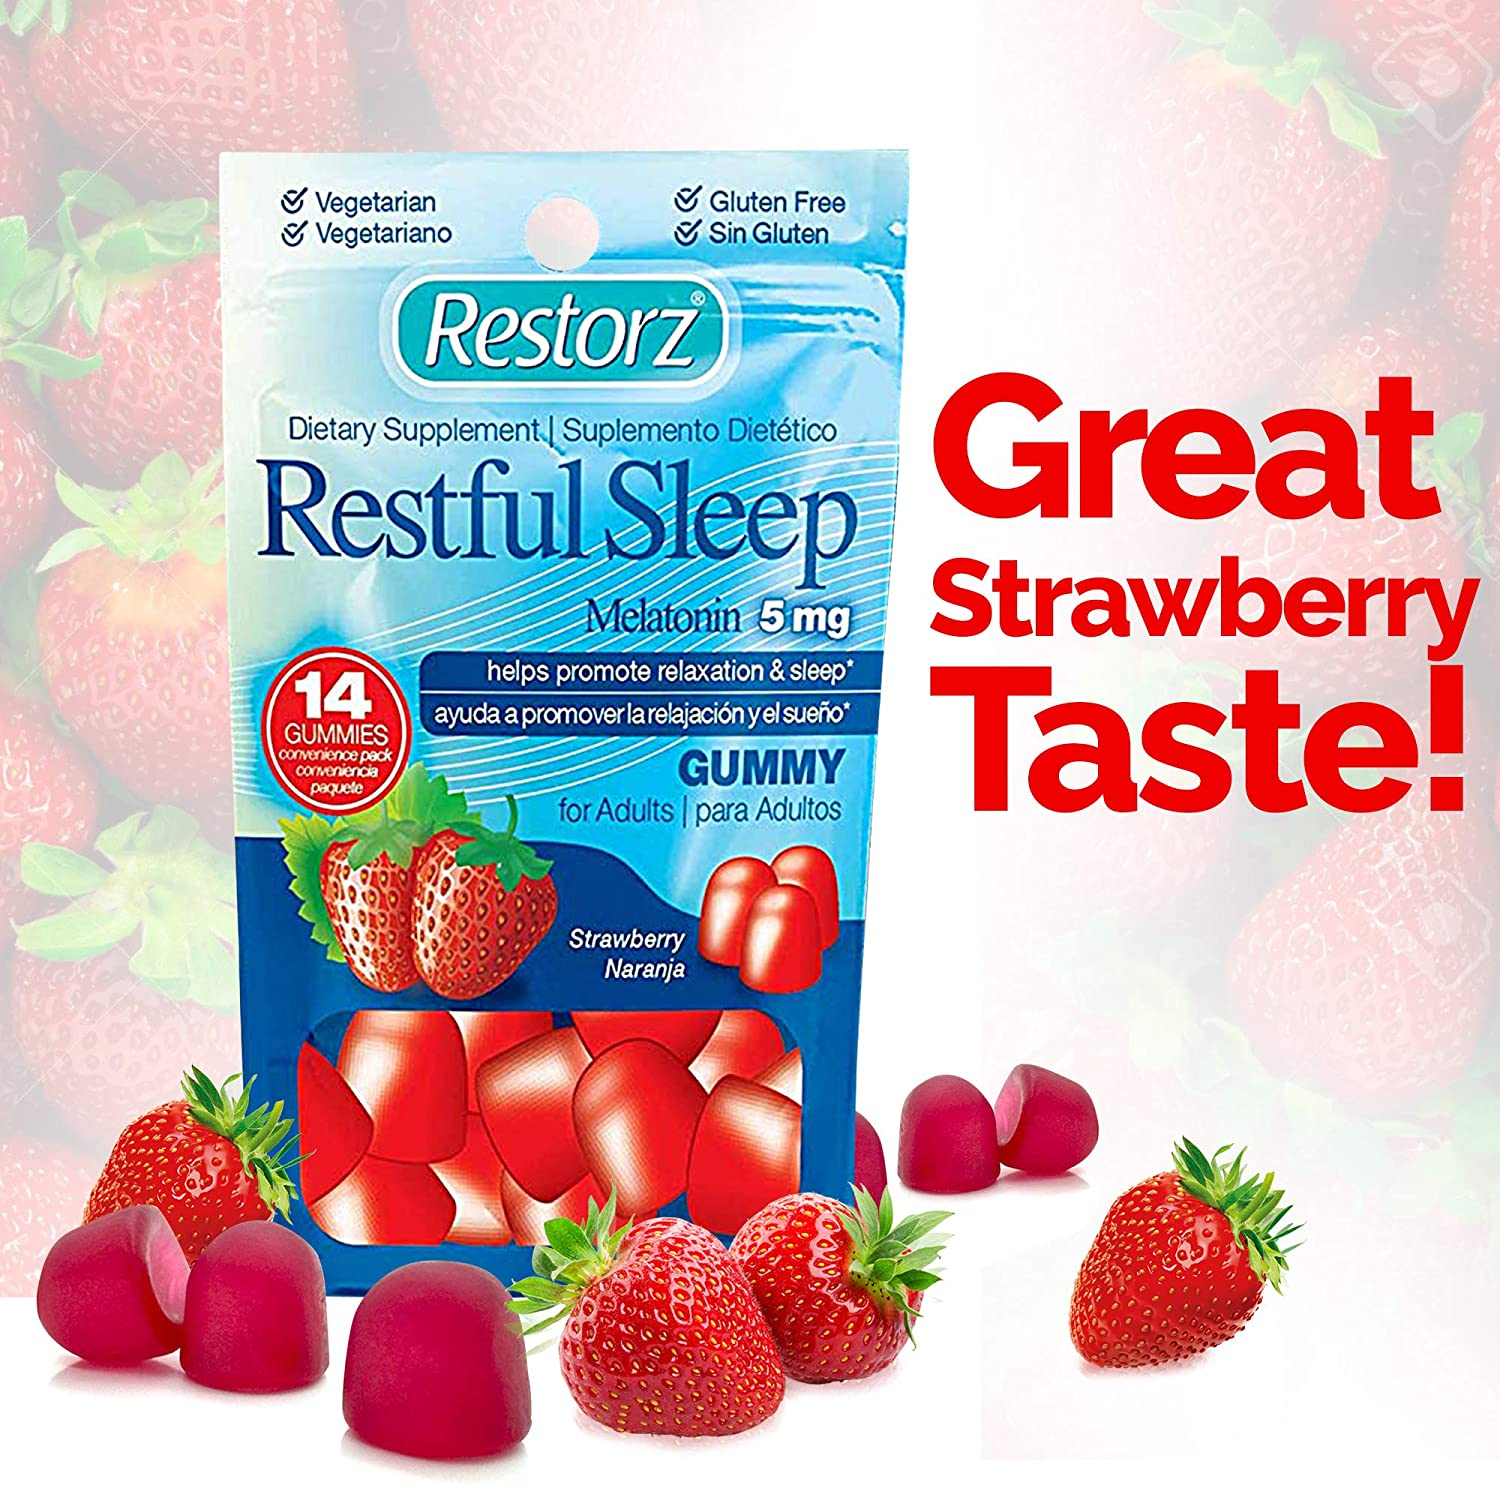 Amazon.com: Restful Sleep Gummies with Melatonin 5mg by Restorz | Natural 5mg Melatonin Gummies Supplement to Combat Insomnia | Sleep Aid for Relaxation and ...